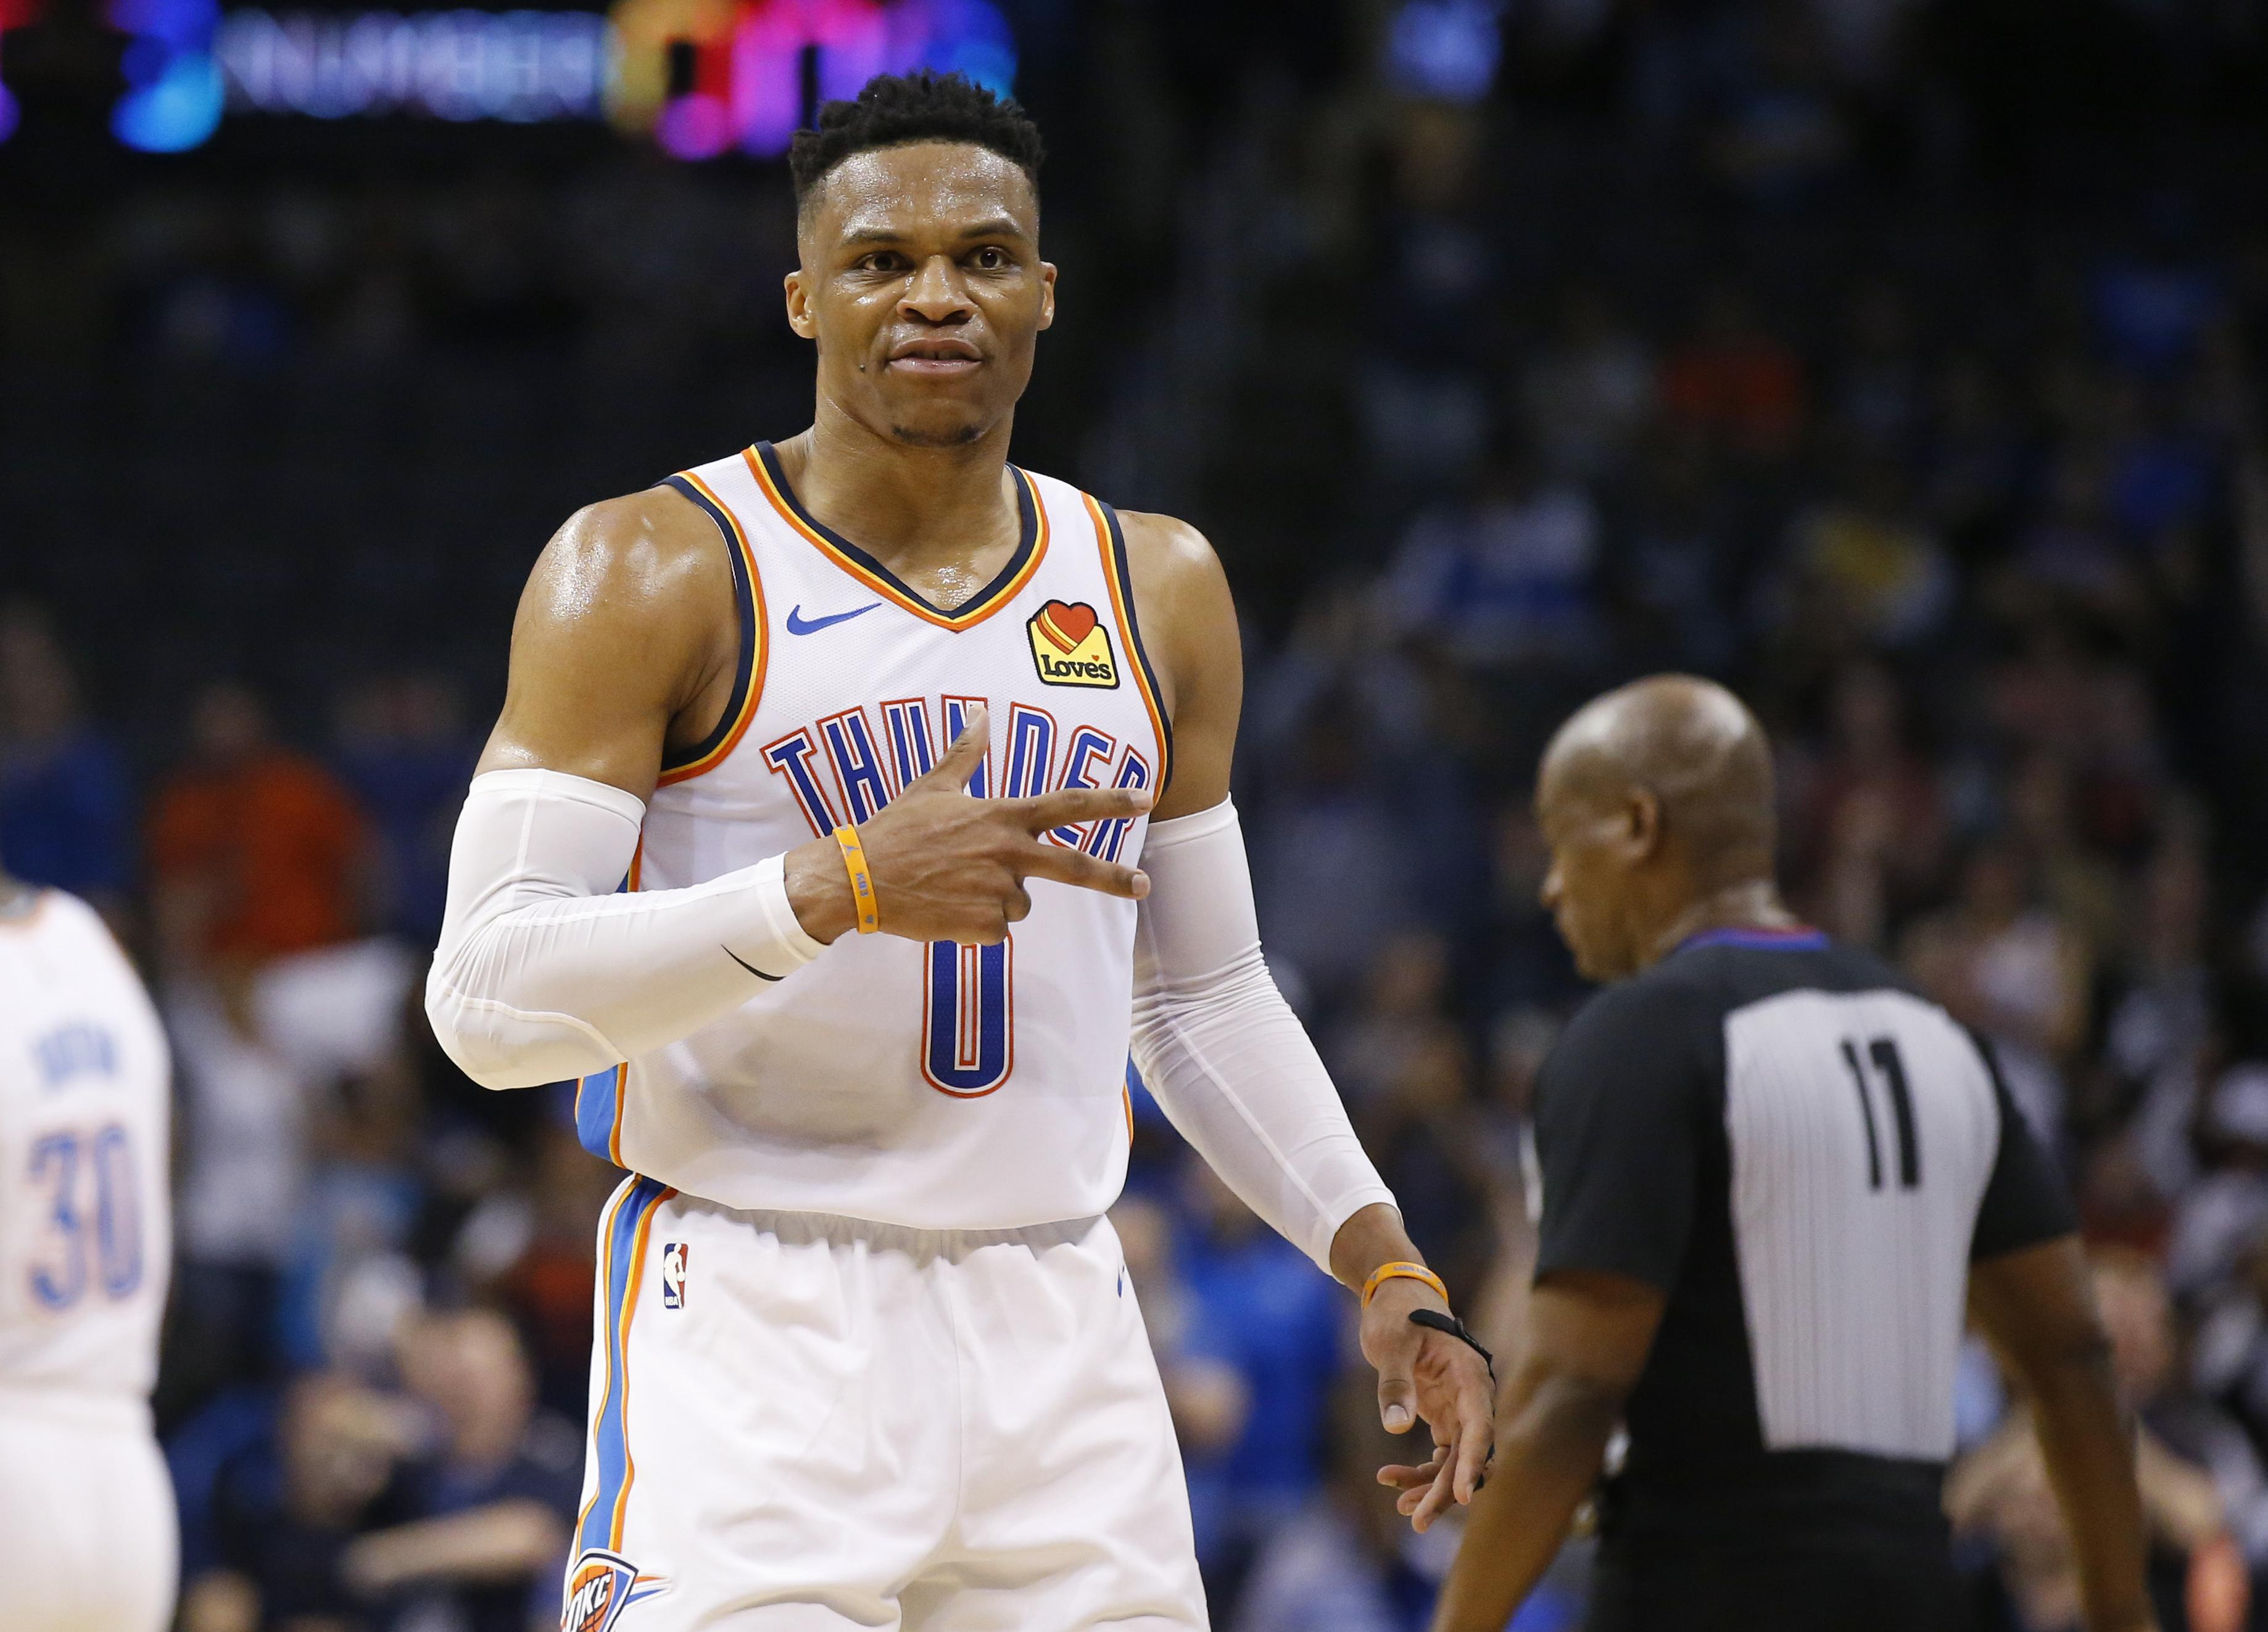 edbaa5d2e6c Oklahoma City Thunder guard Russell Westbrook (0) gestures to the crowd in  the second